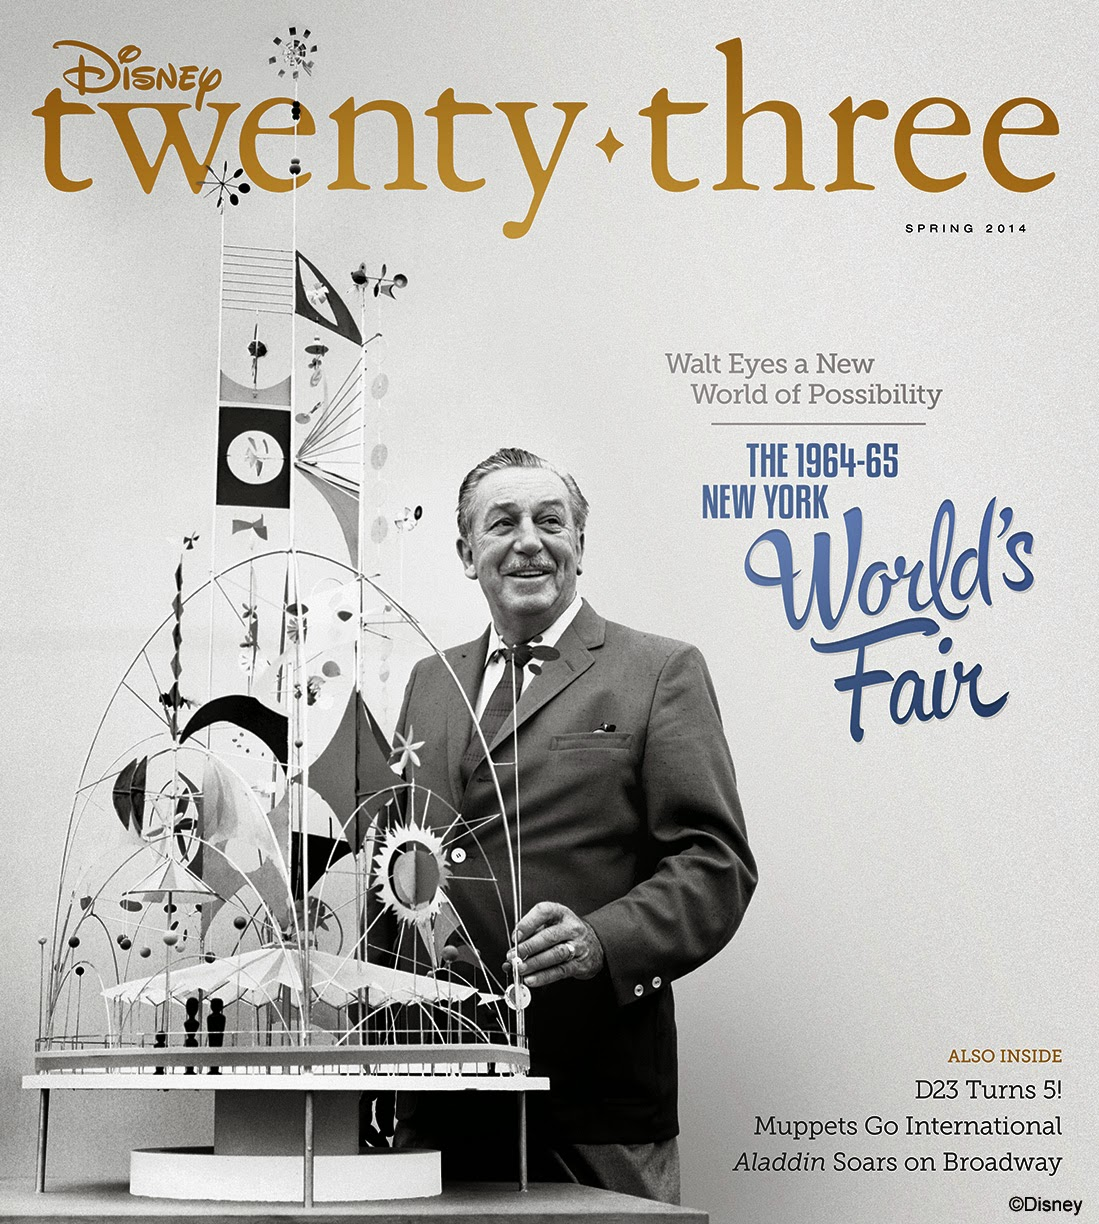 Disney twenty-three Spring Issue Celebrates Disney's Contributions to the 1964–65 New York World's Fair